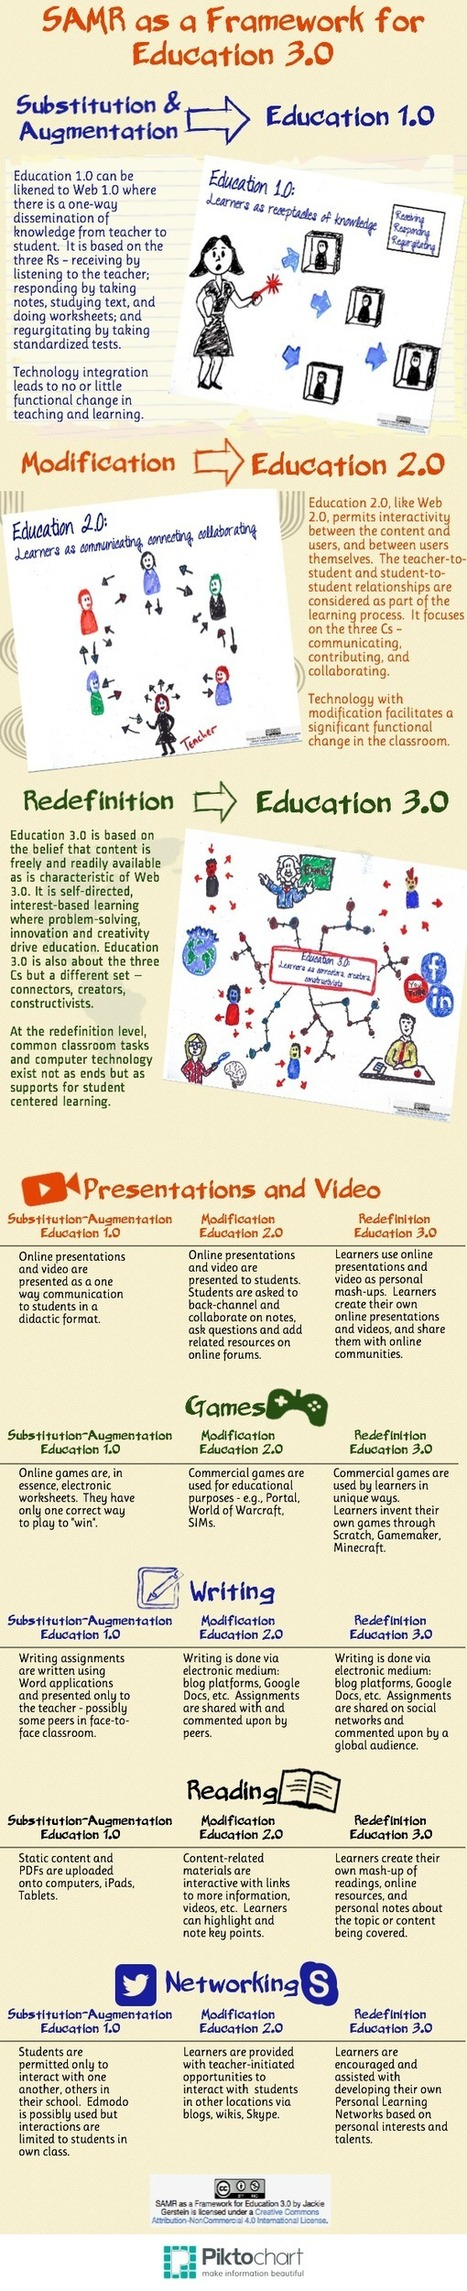 SAMR as a Framework for Moving Towards Education 3.0 | Web 2.0 and Social Media | Scoop.it